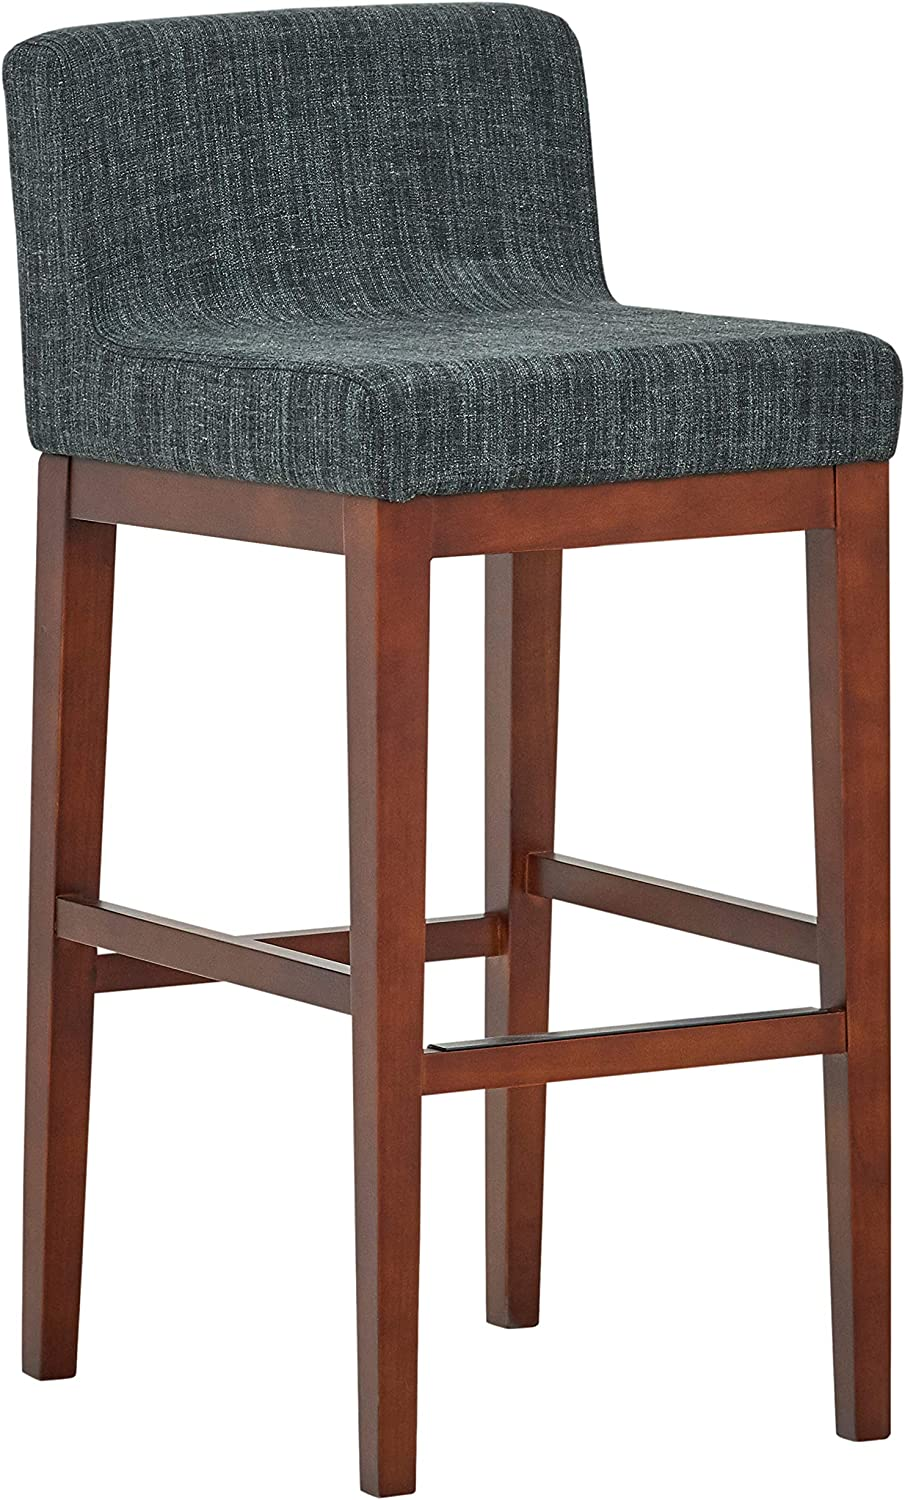 Rivet Mid-Century Modern Upholstered Low Back Kitchen Bar Stool, 41 Inch Height, Blue